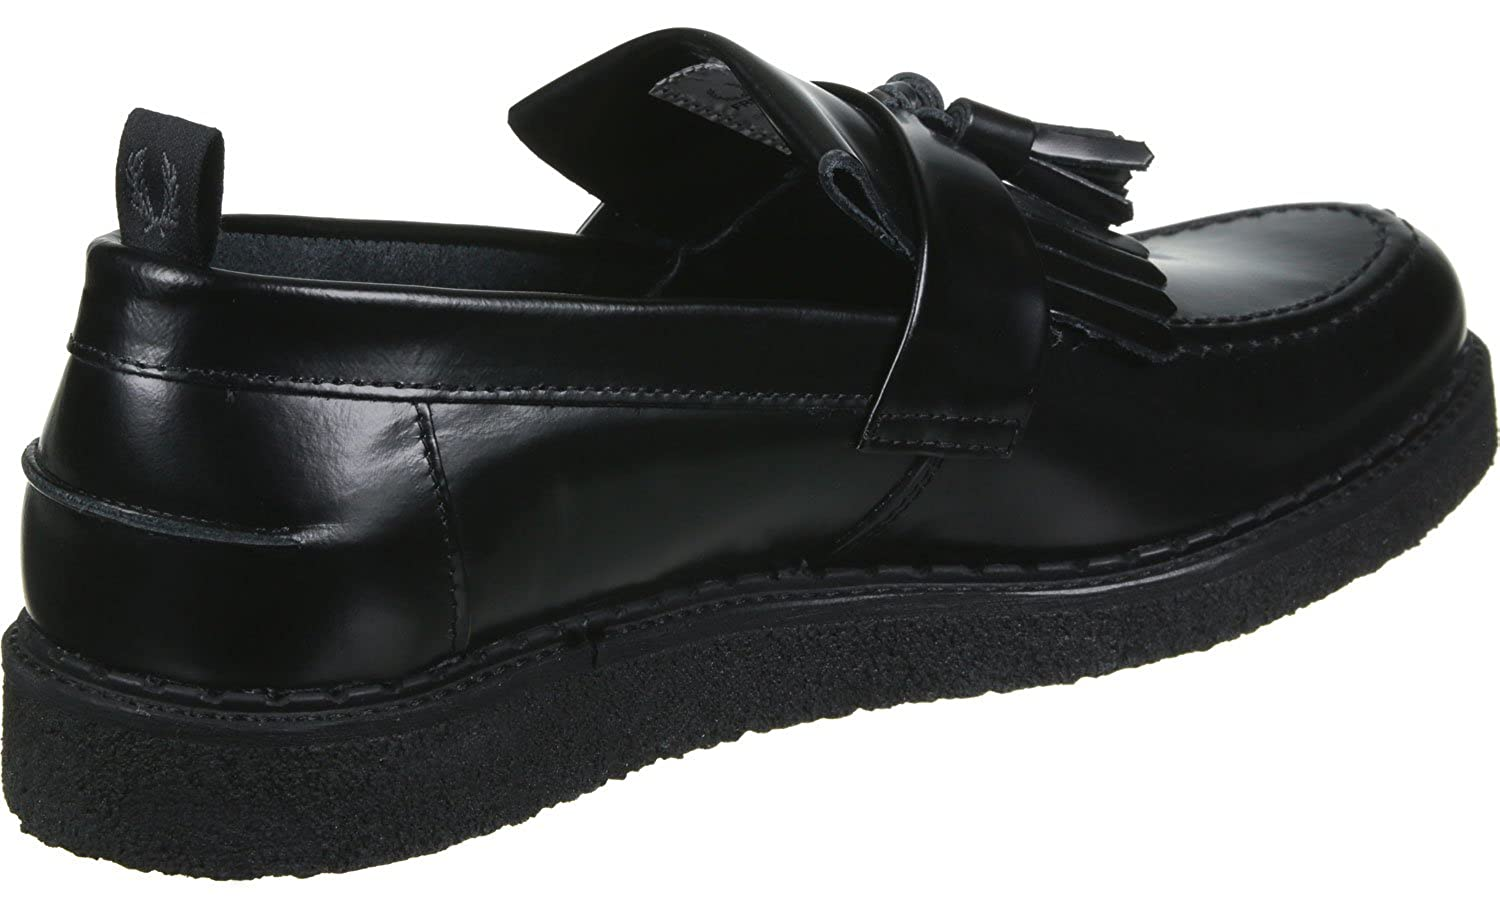 Fred Perry FS x Gc Tassel Loafer Leather Calzado Negro